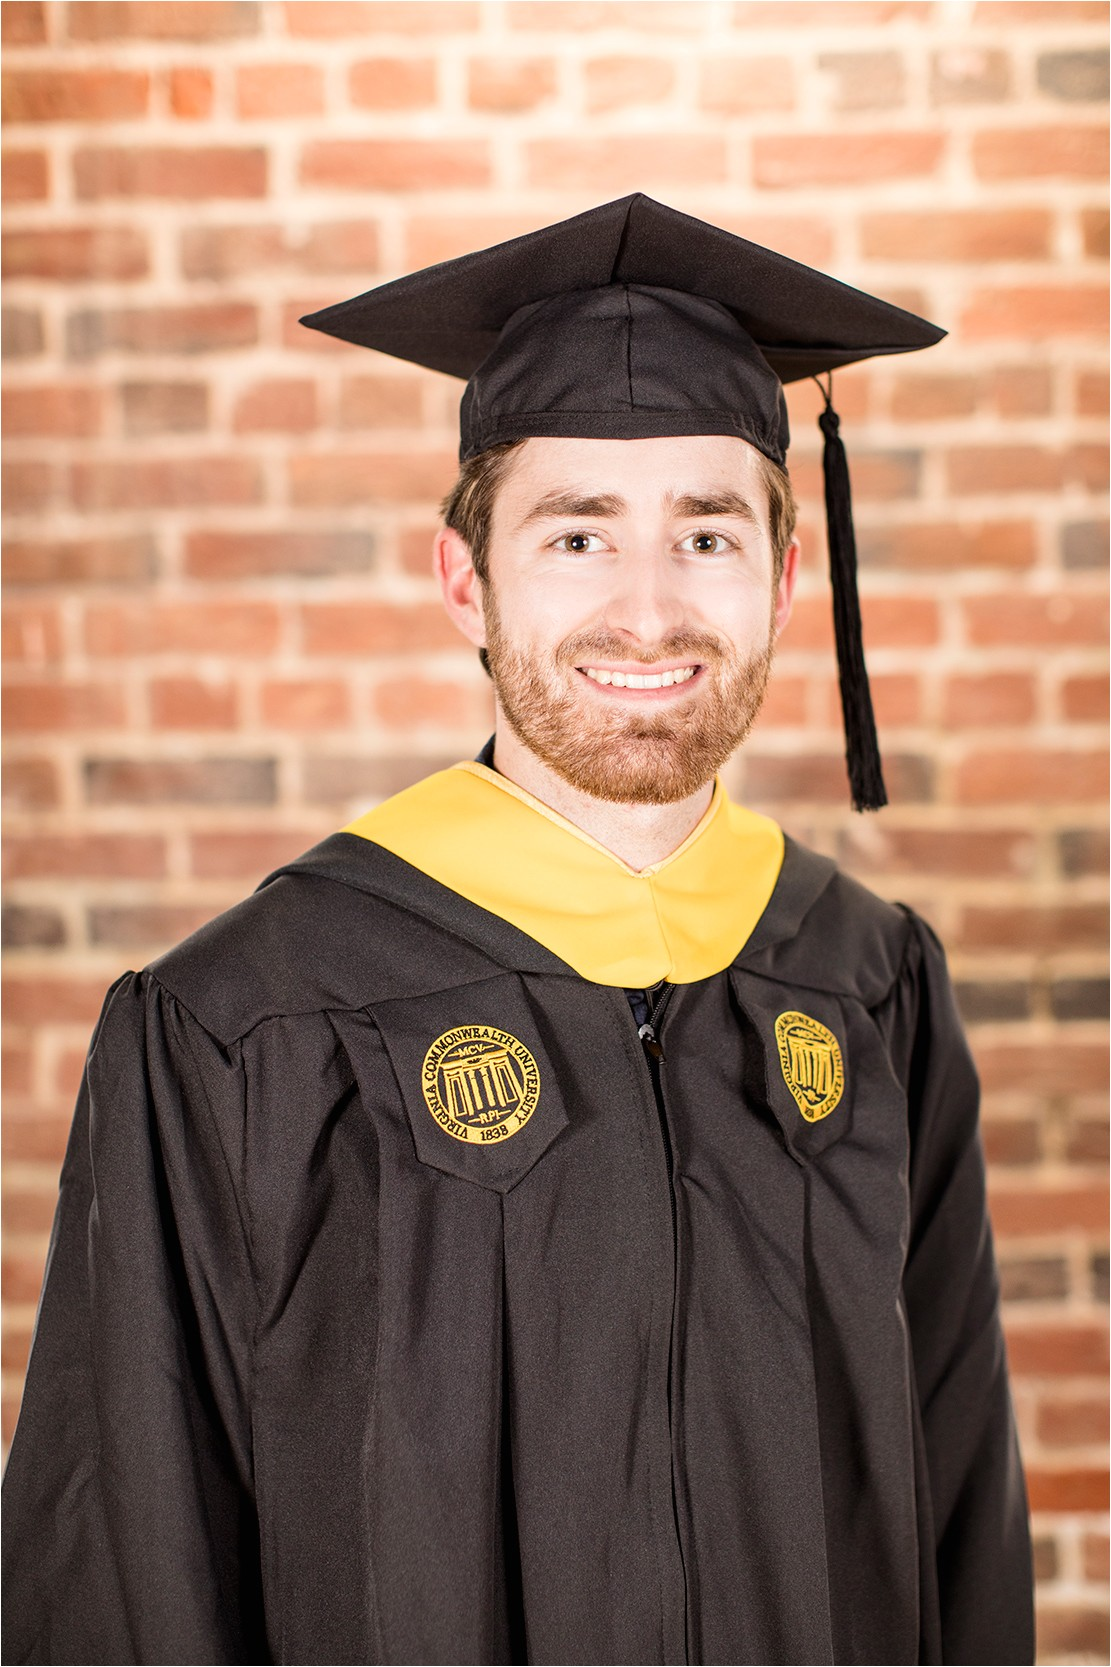 vcu male senior graduation portraits on libby hill